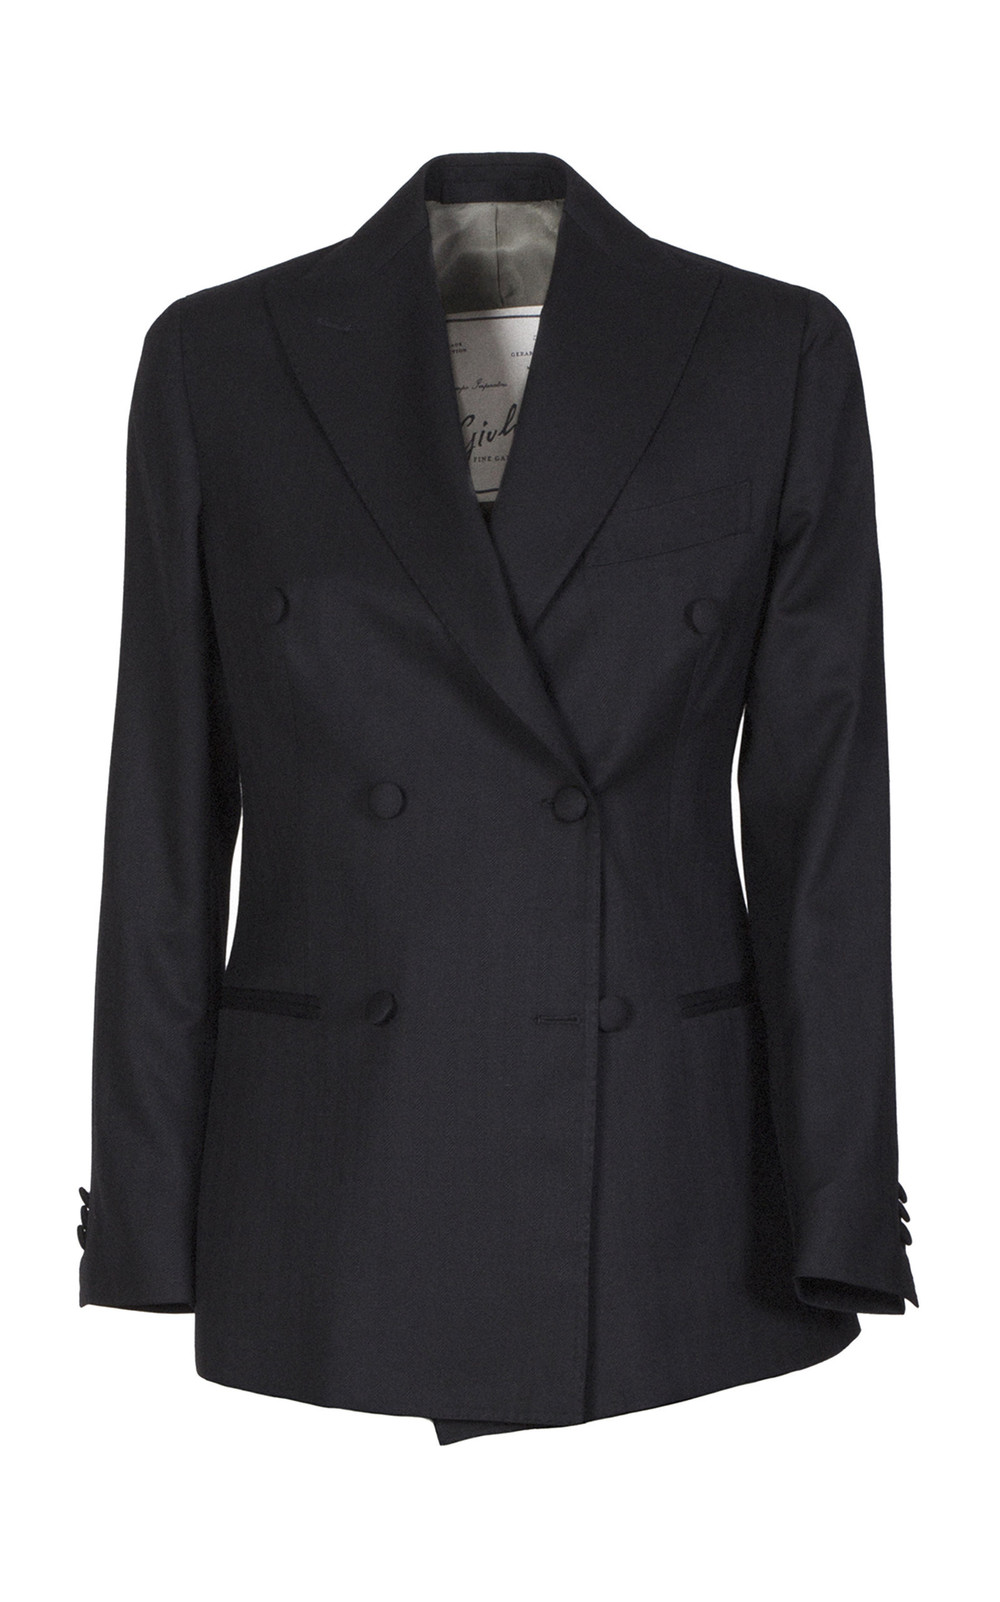 Giuliva Heritage Collection Double Breasted Suit Blazer in black